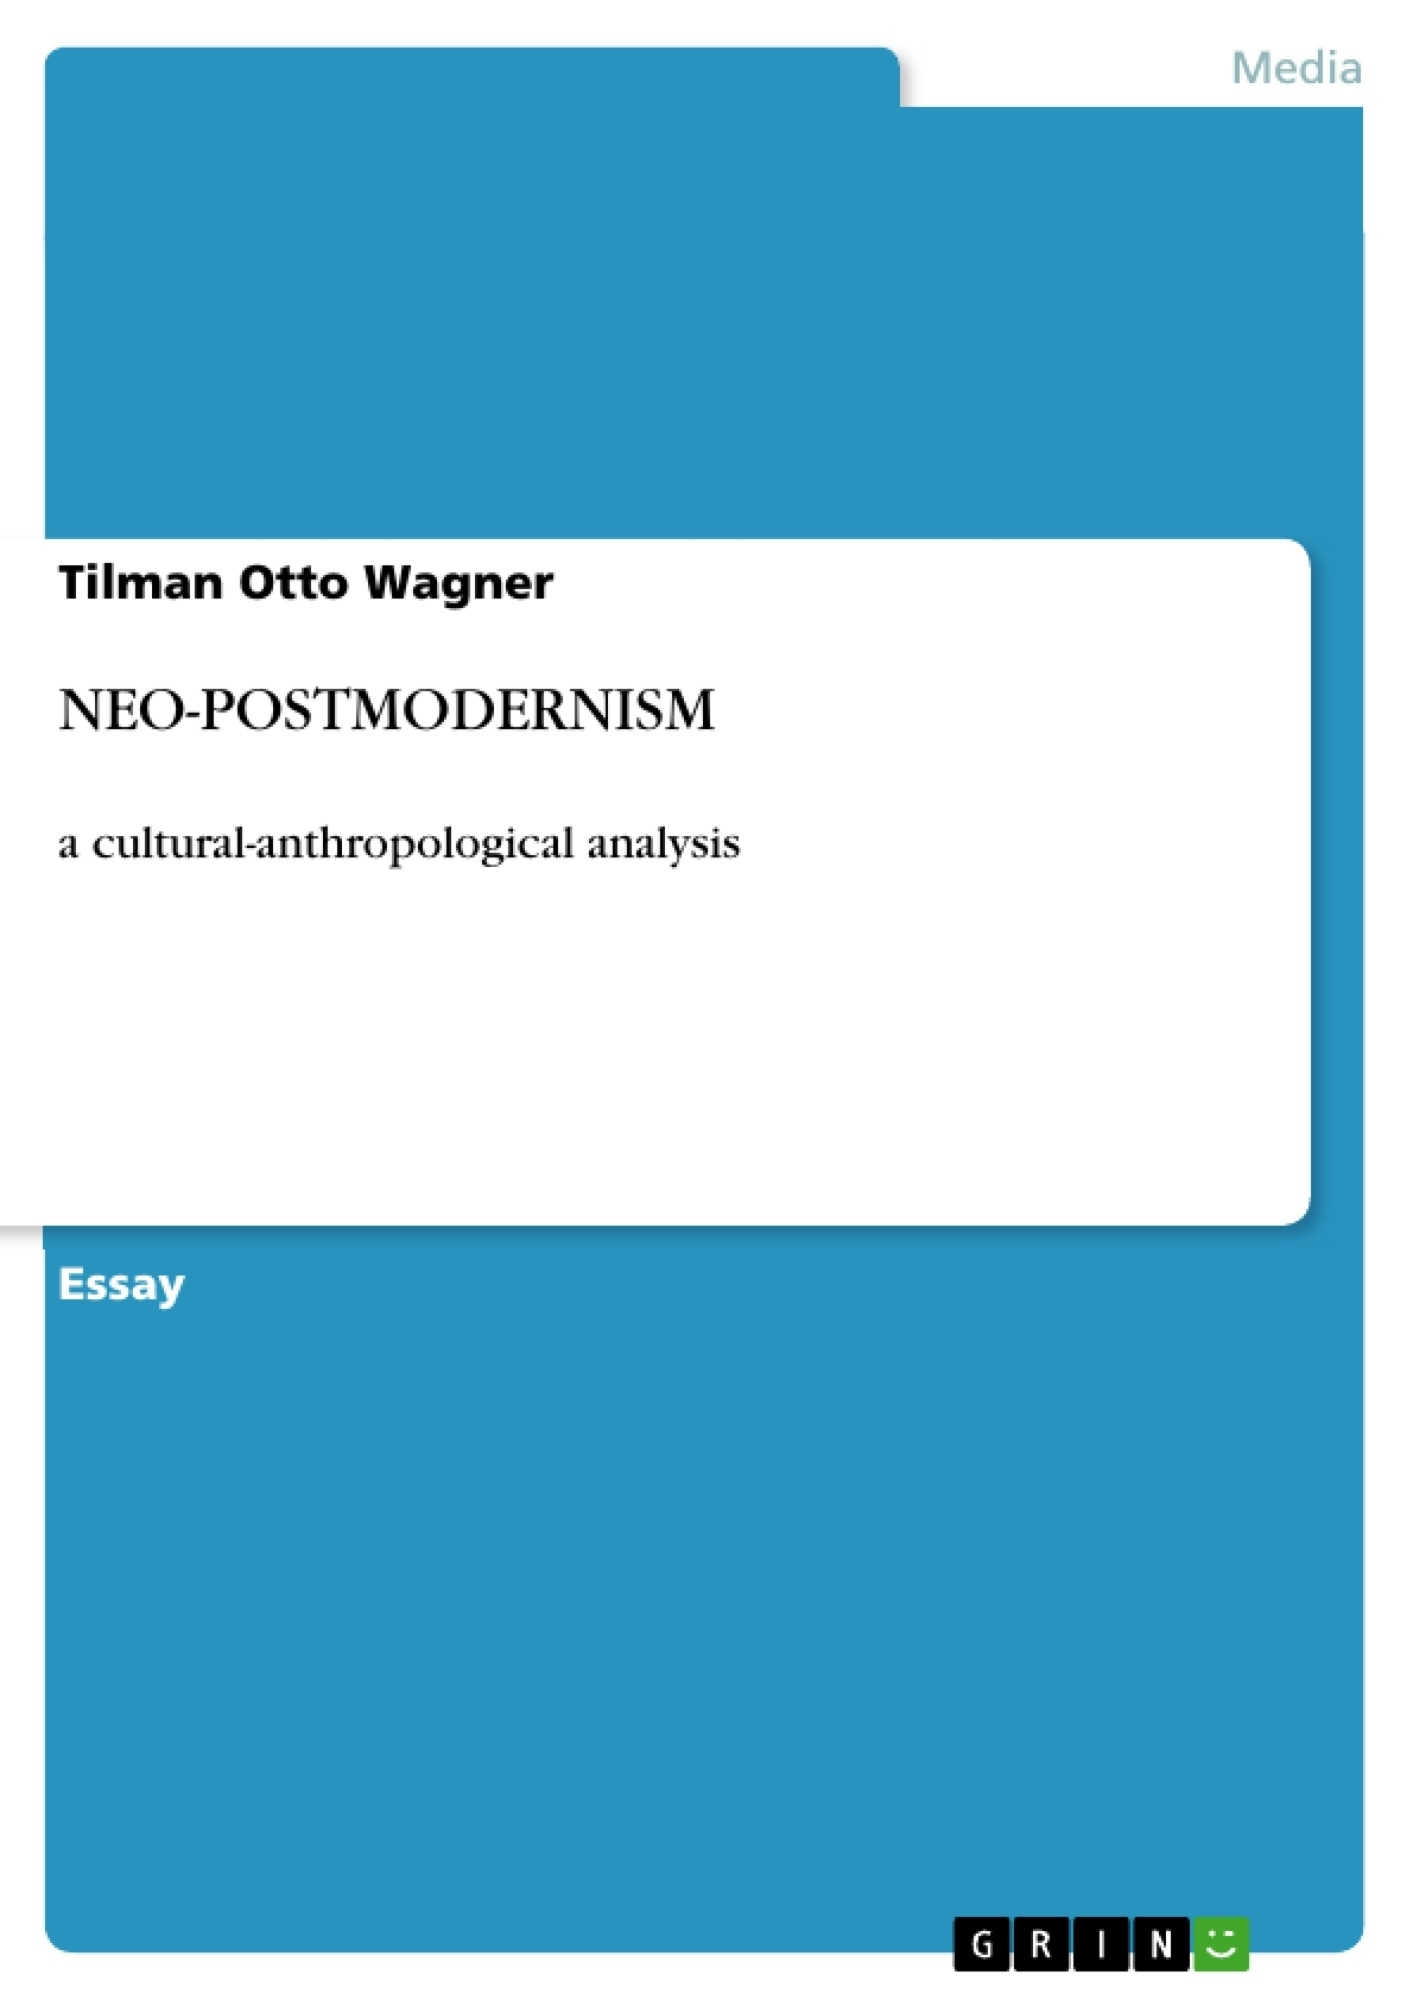 term papers on neo-orthodox Answer to two question see the added file discuss why rudolf bultmann should or should not be considered neo-orthodox in light of the such as term papers.